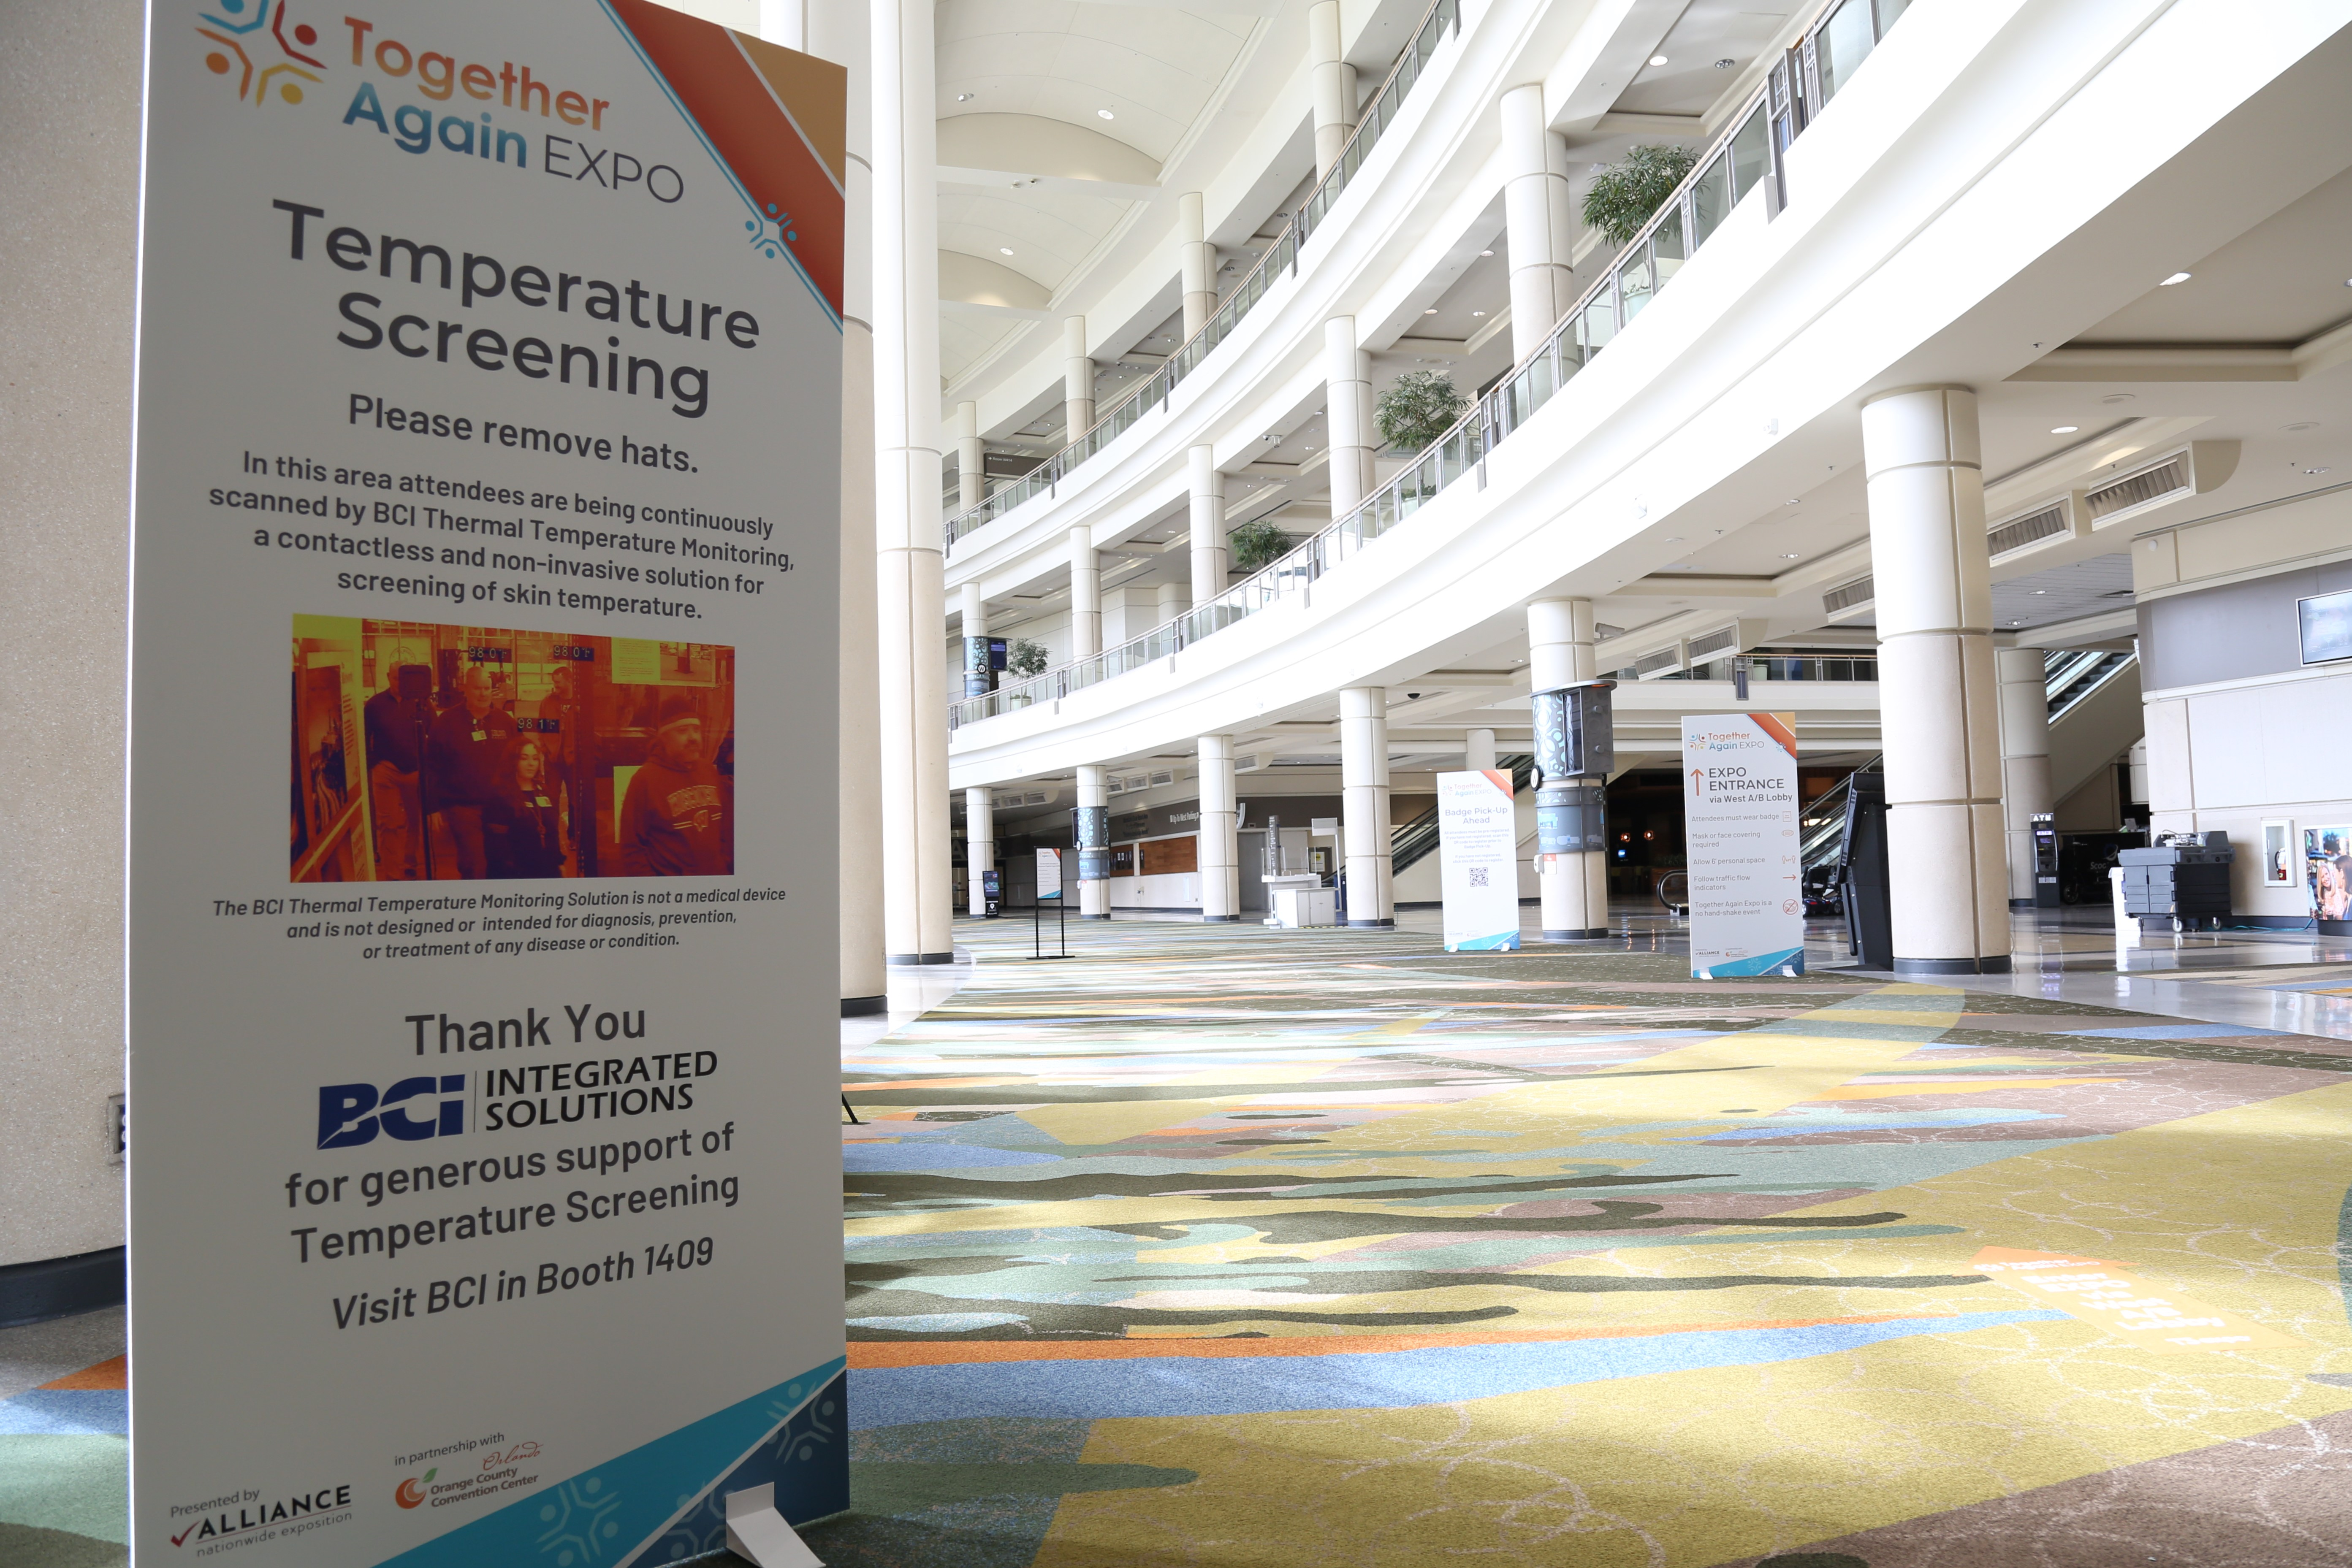 Temperature checking sign in the Orange County Convention Center West Central Lobby at the Together Again Expo